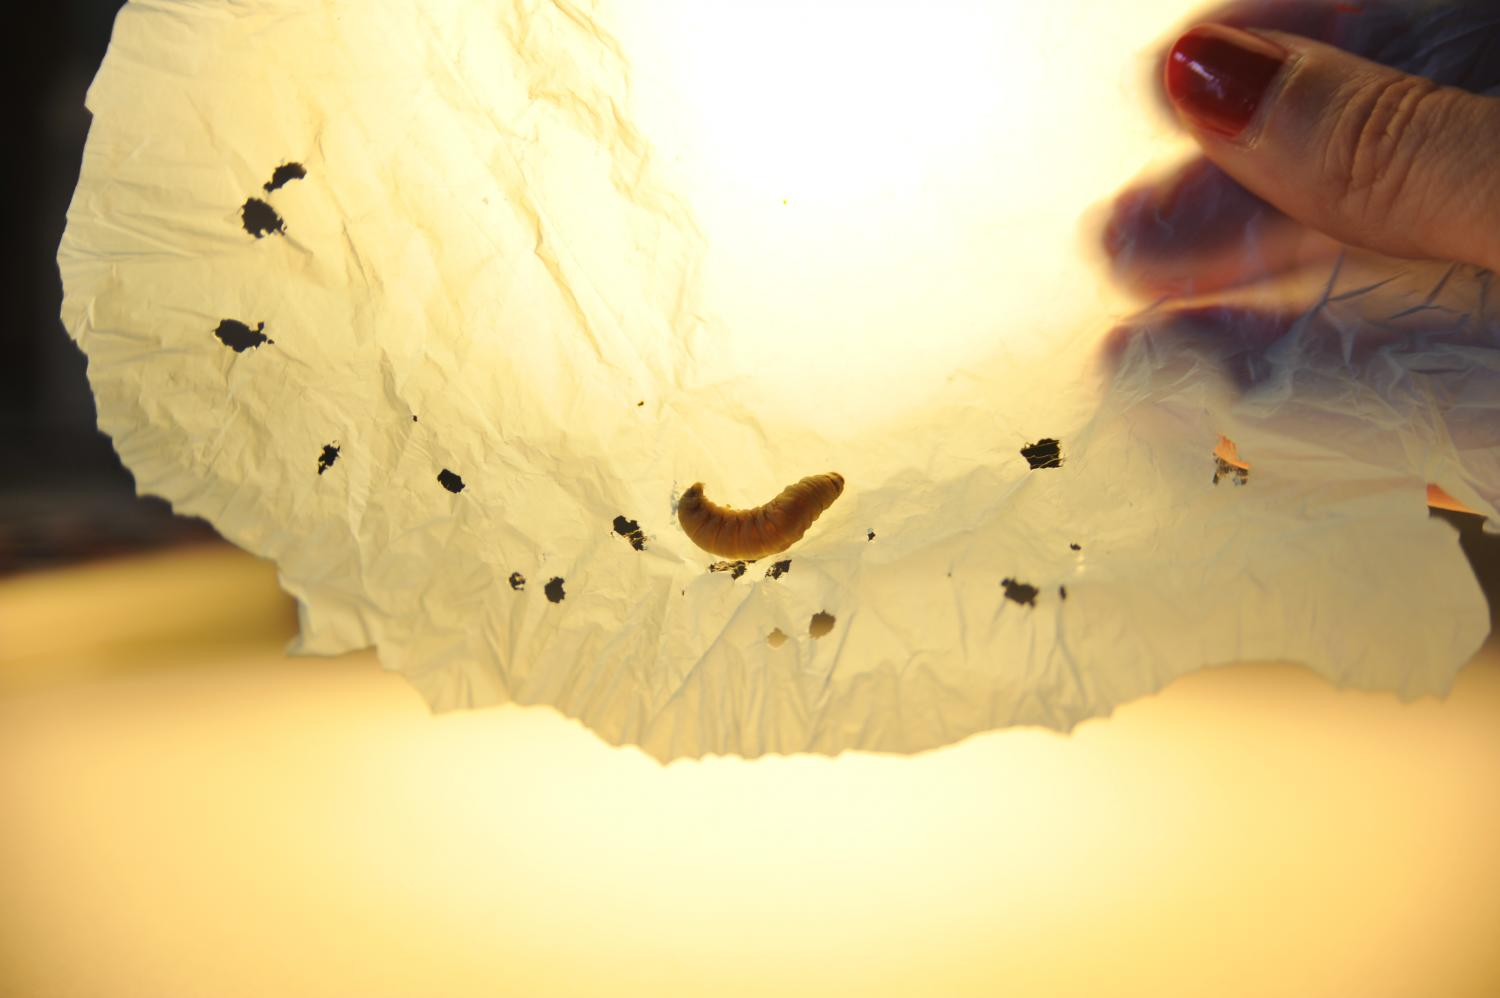 Wax worms biodegrade plastic bags at 'uniquely high speeds', study finds